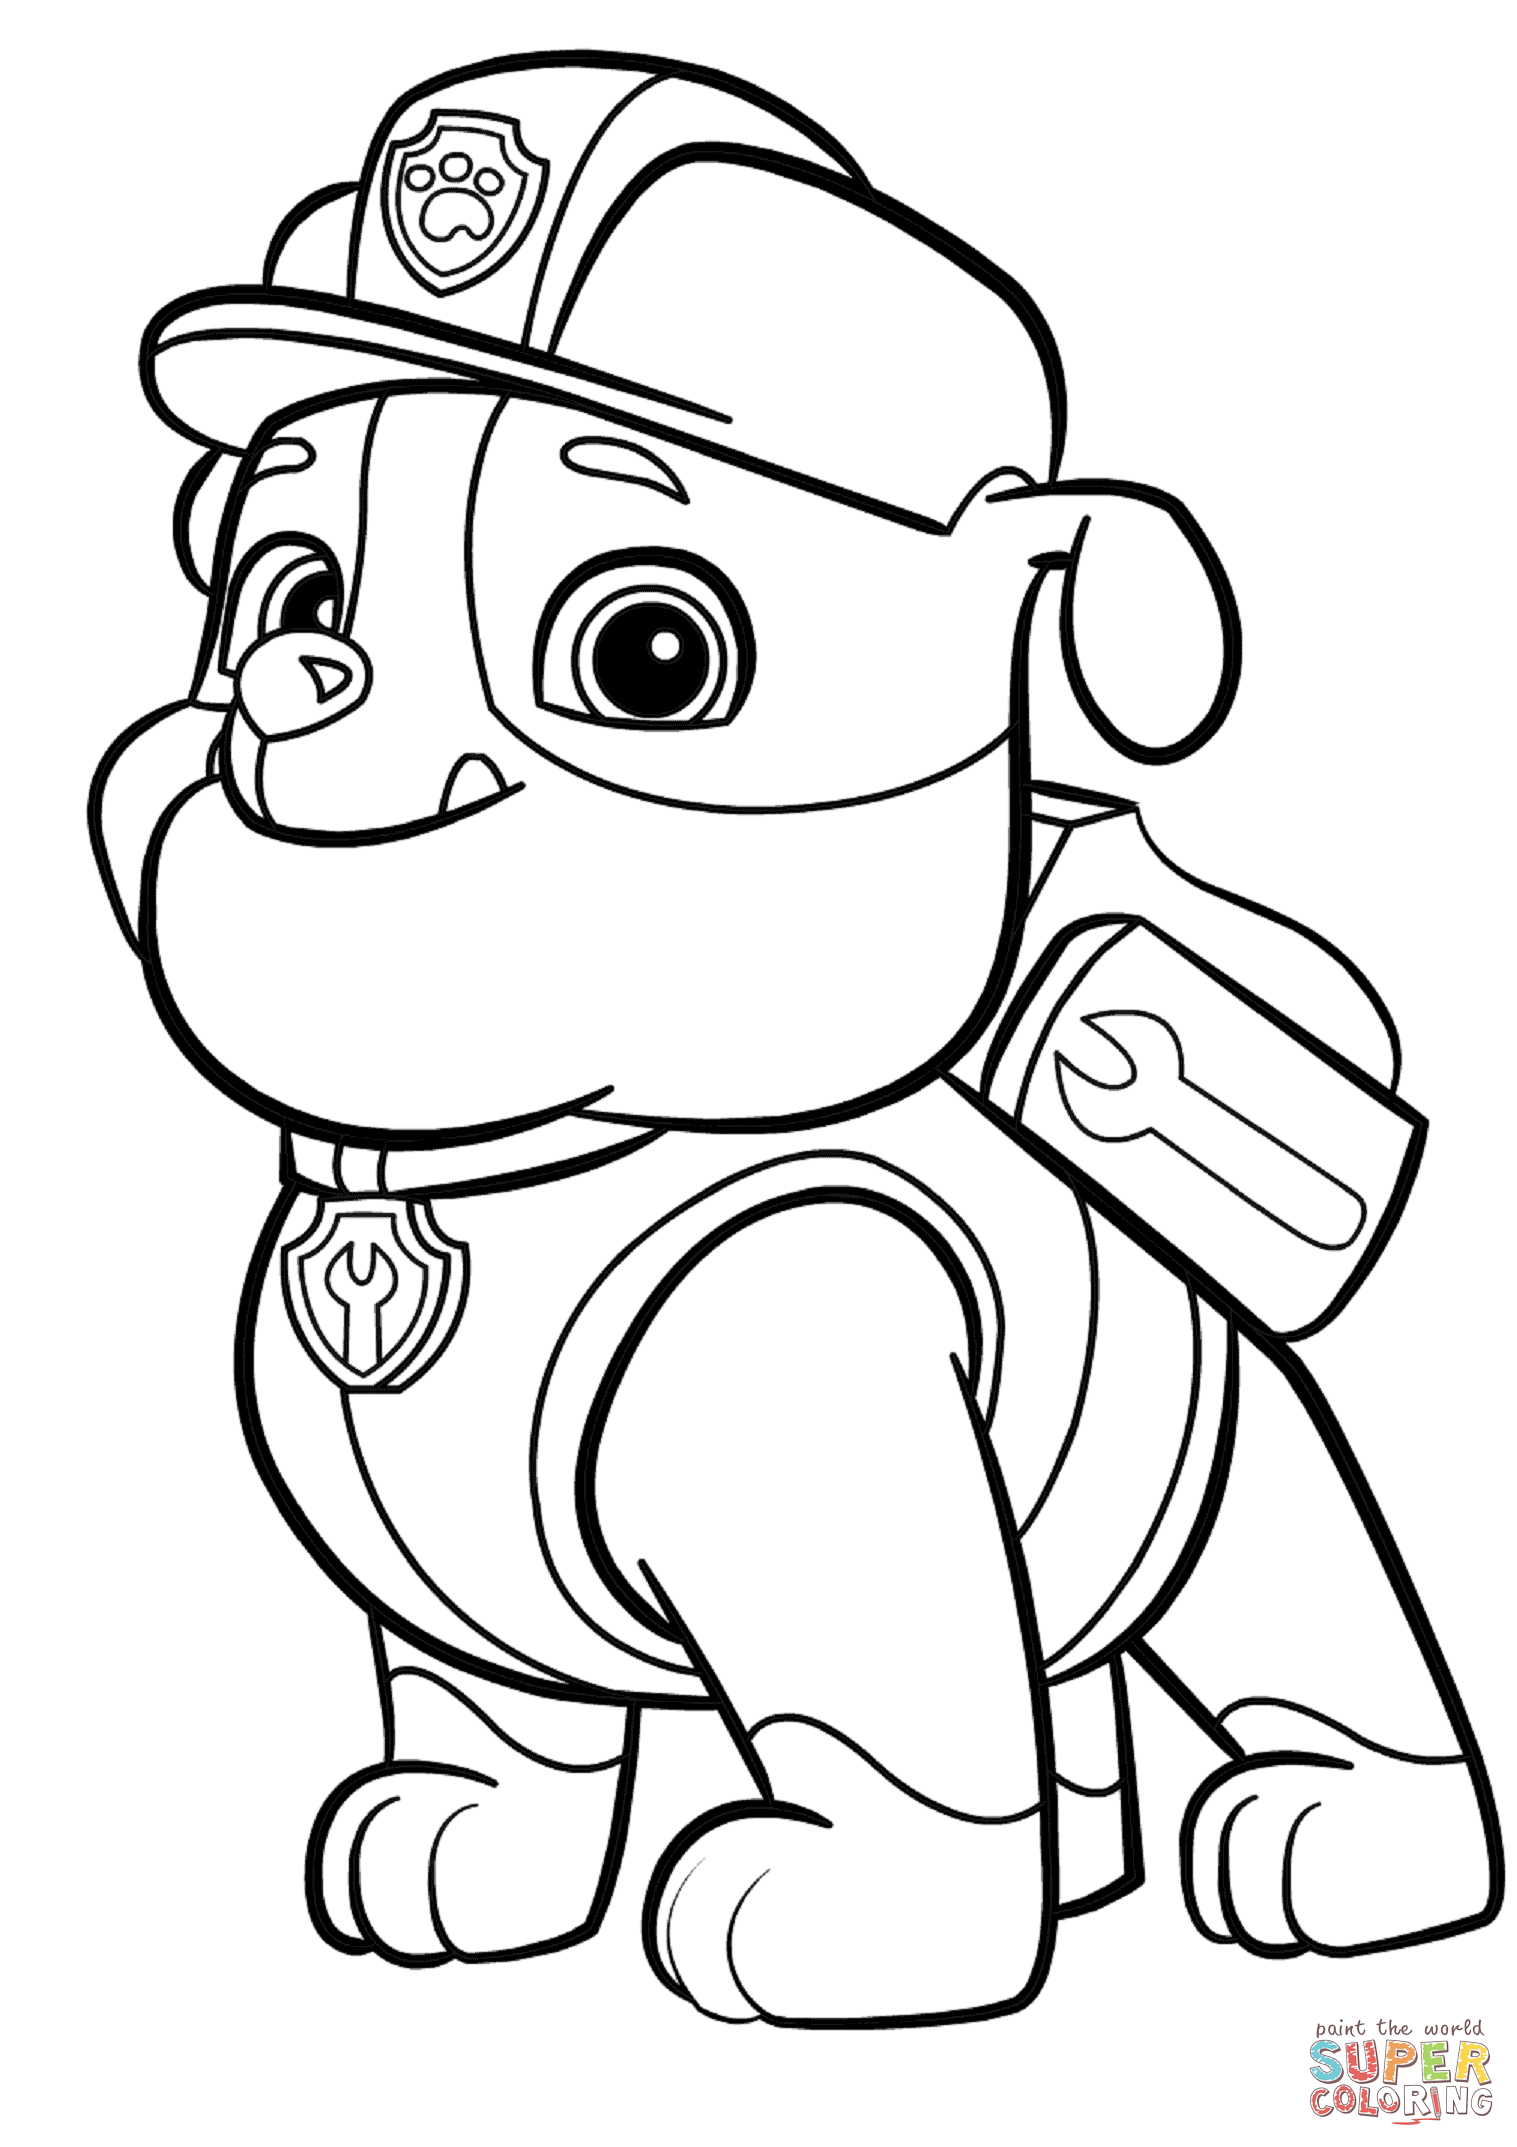 coloring paw patrol rubble paw patrol rubble coloring page free coloring pages online patrol paw rubble coloring